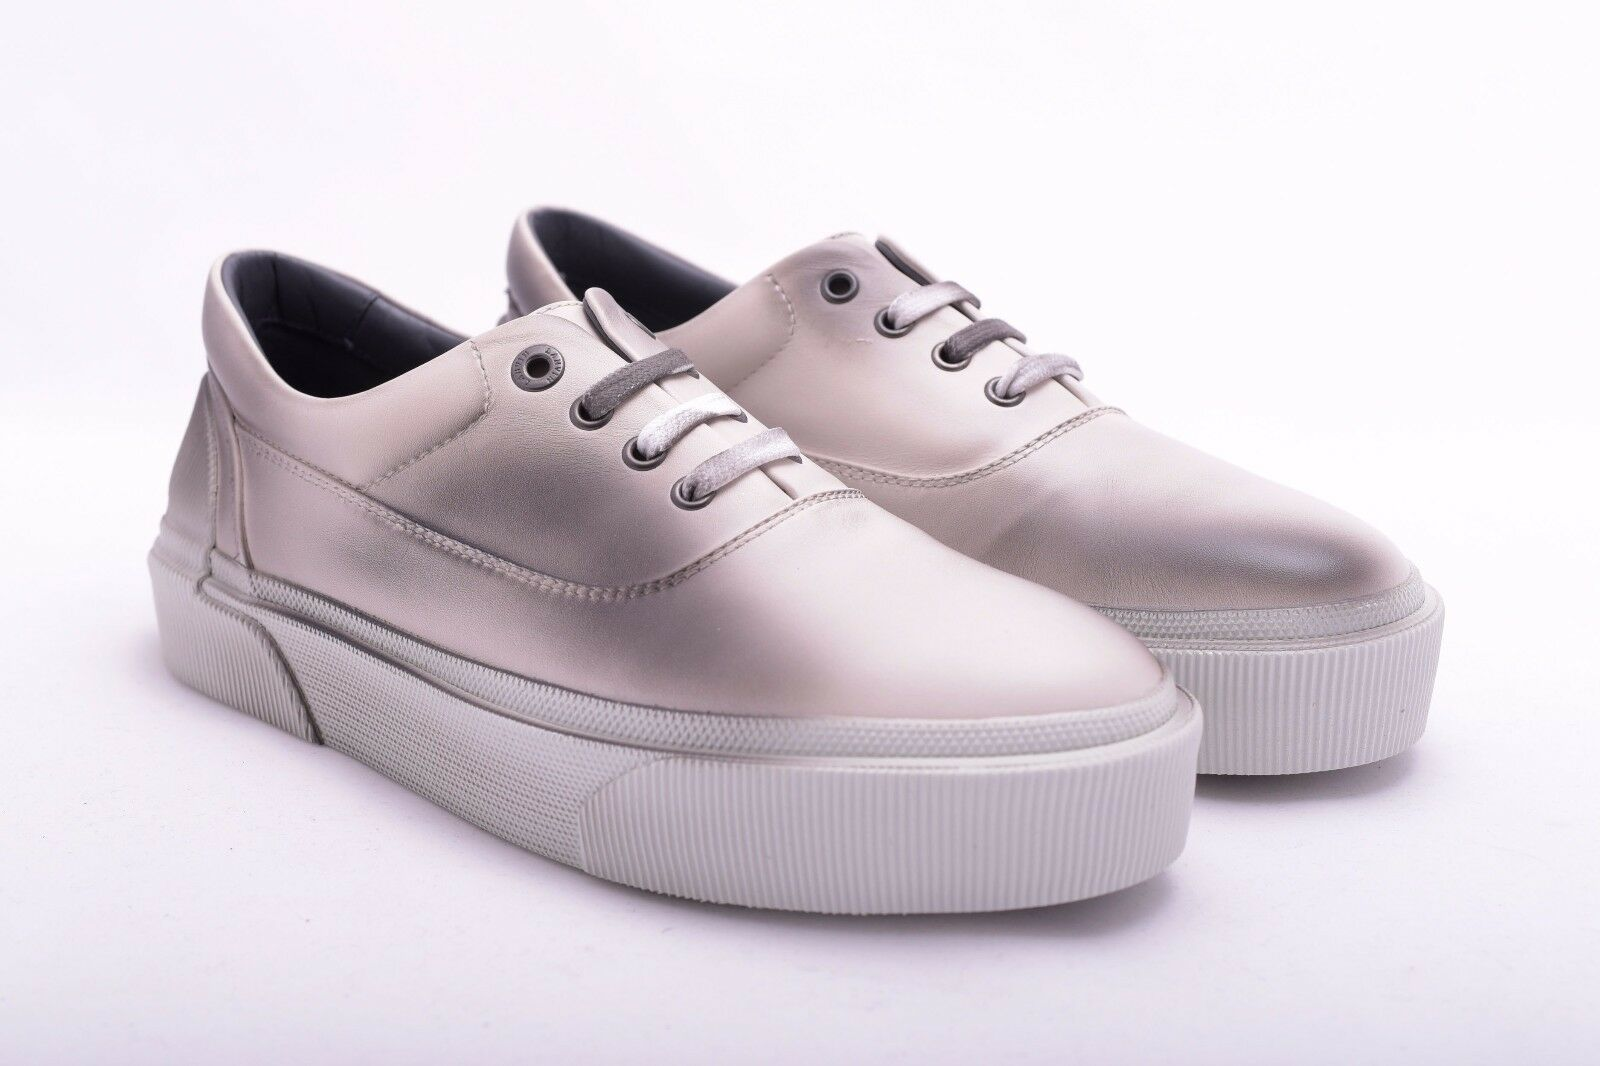 LANVIN 950$ Authentic New Ivory Grey Spray Paint Leather Oxford Sneakers